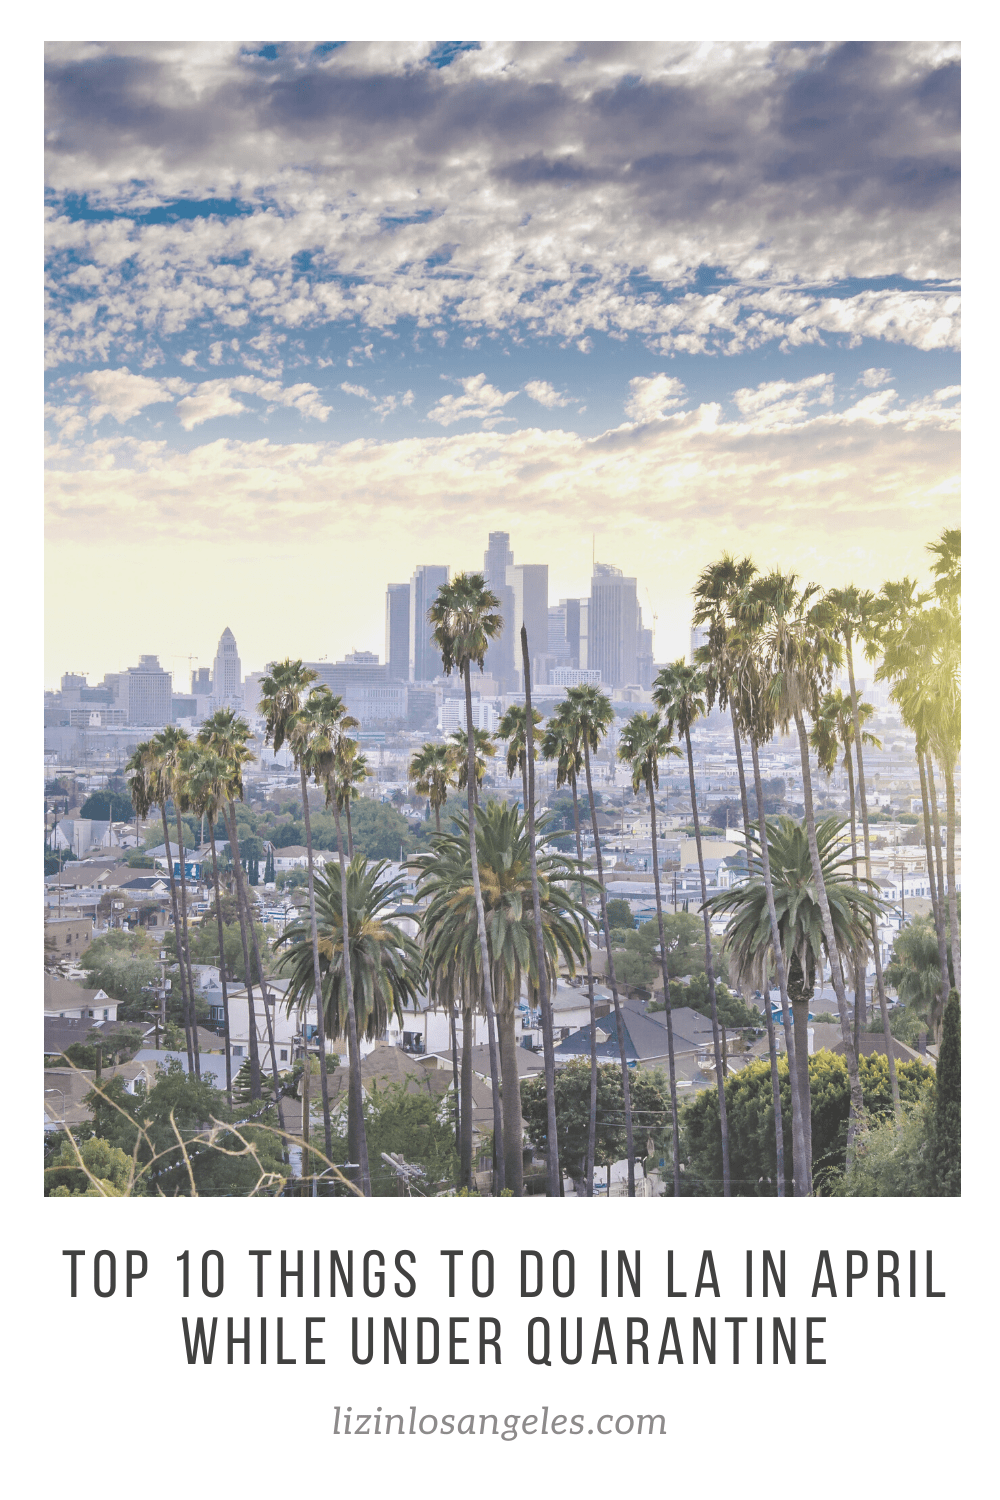 Top 10 Things To Do in LA in April While Under Quarantine, a blog post by Liz in Los Angeles, Los Angeles Lifestyle Blogger: an image of Los Angeles